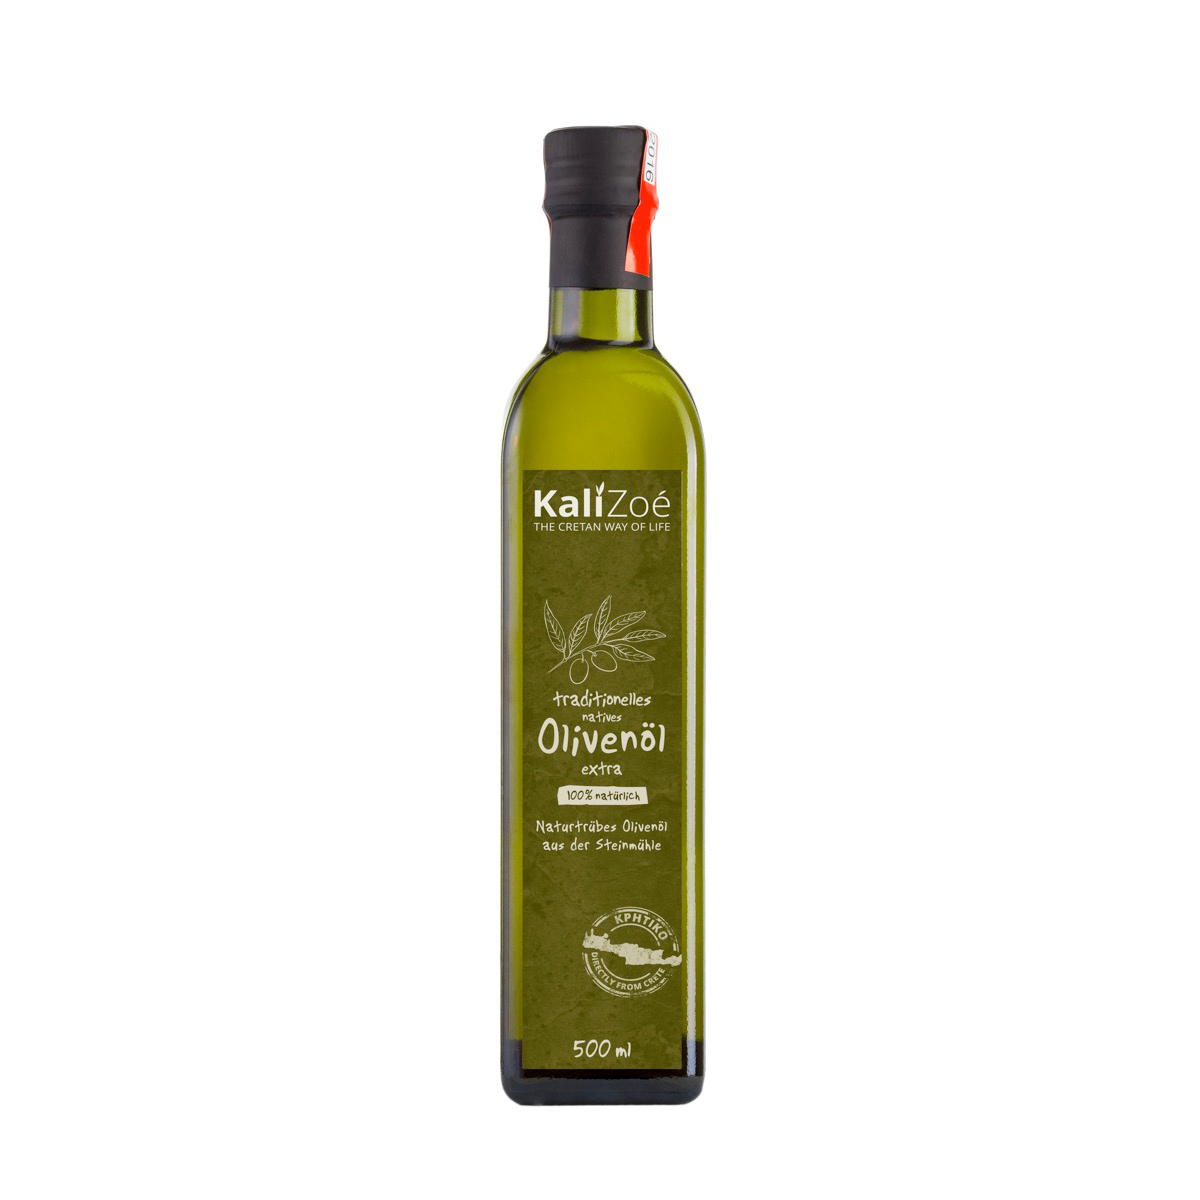 HUILE D'OLIVE EXTRA VIERGE non filtrée – 500 ml